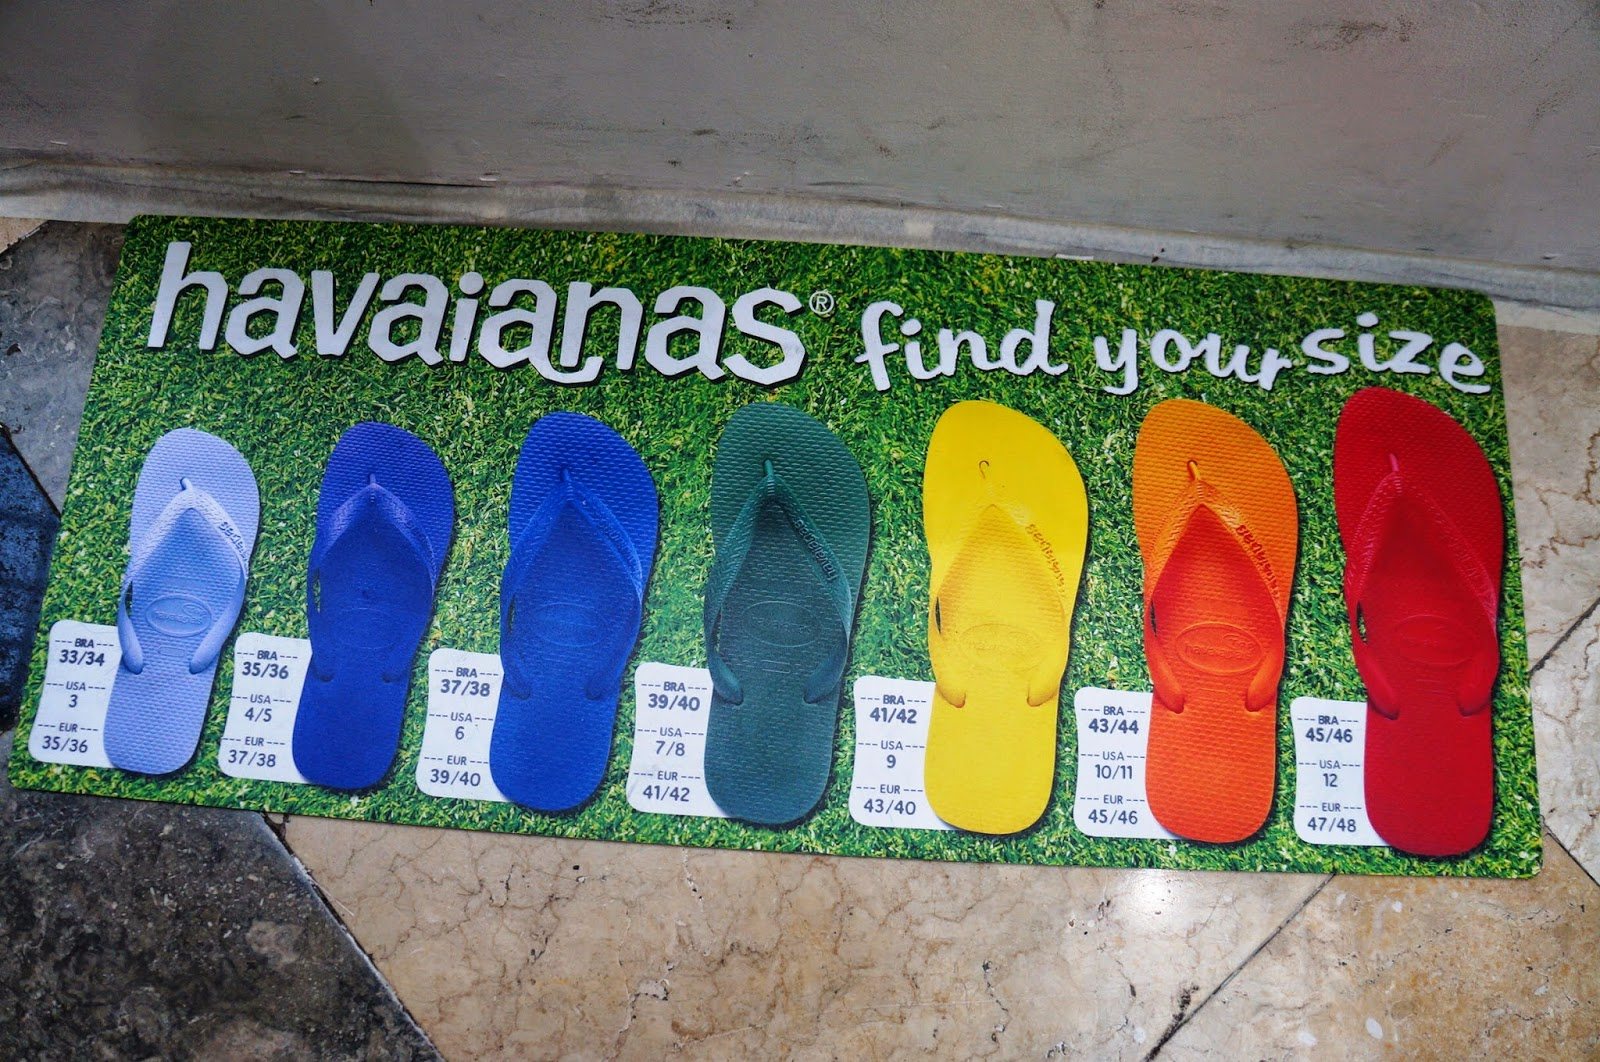 15f3c8bc66f1 Make Your Own Havaianas 2014  The Biggest Flip-Flops Customization Event in  the Country ~ Wazzup Pilipinas News and Events